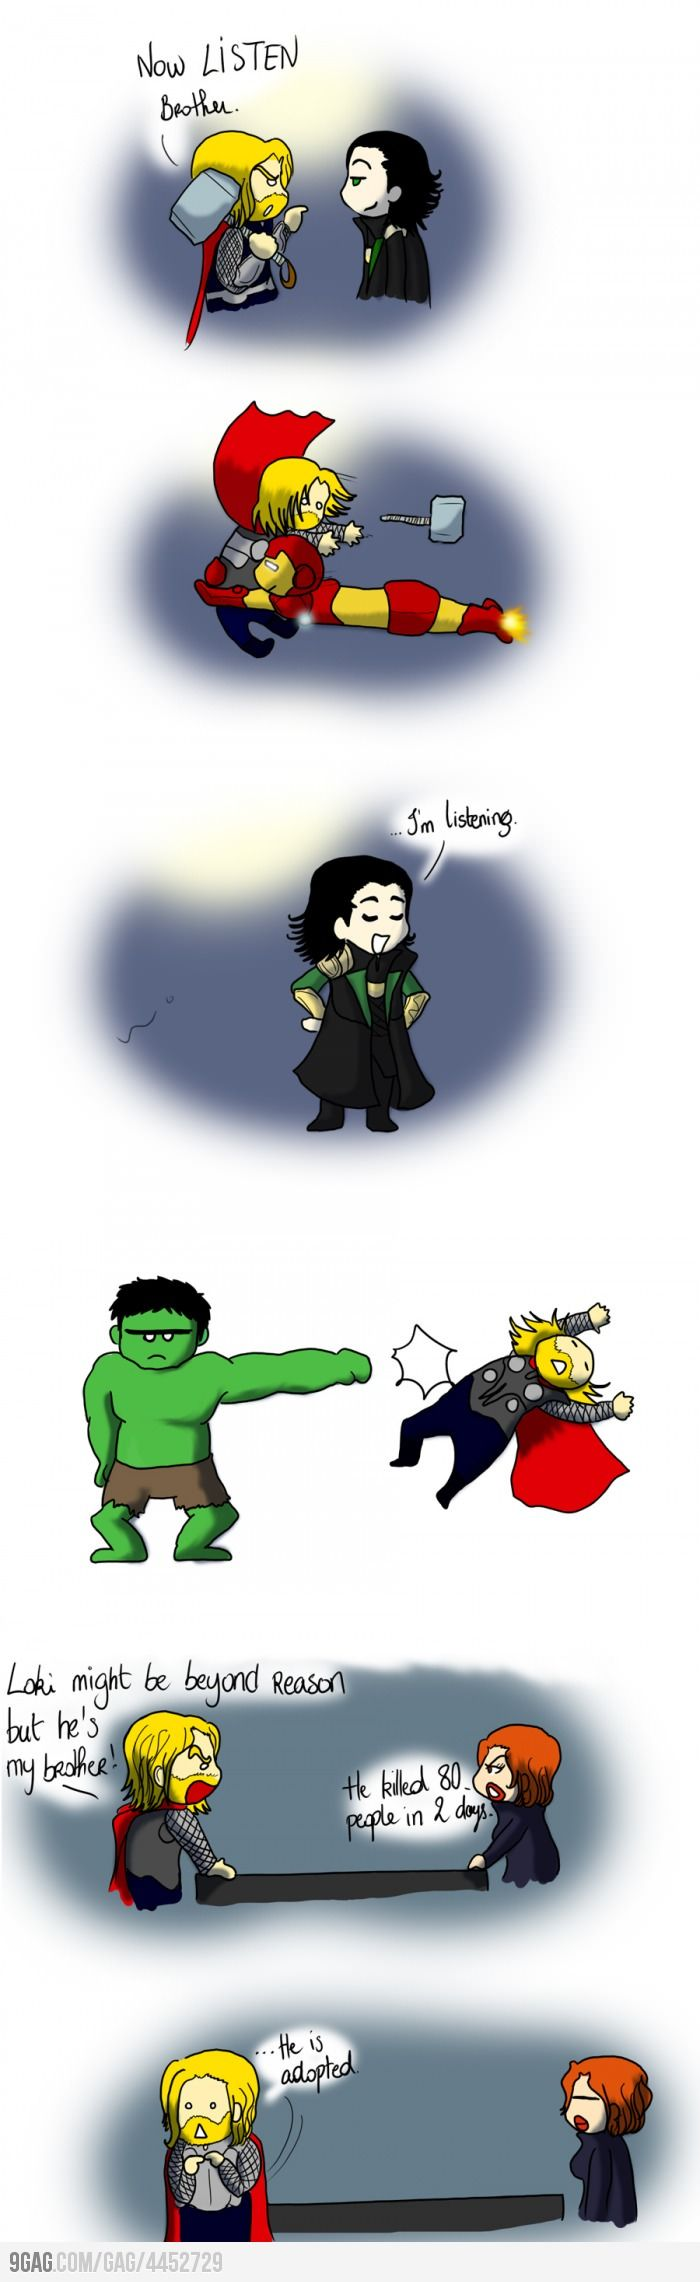 These little avengers cartoons will never get old.